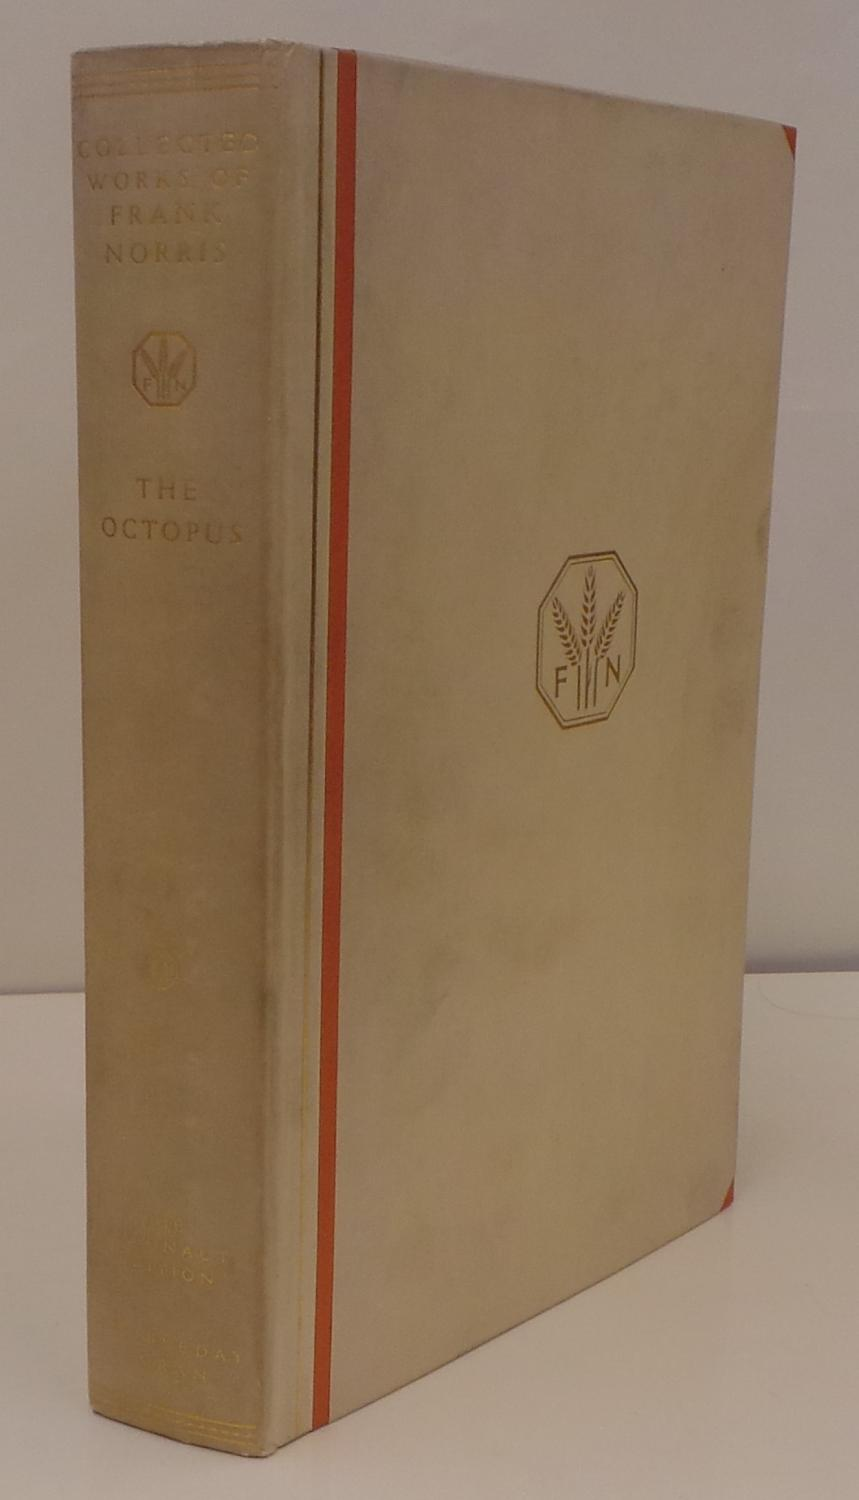 The Argonaut Manuscript Limited Edition of Frank Norris's Works: Frank Norris